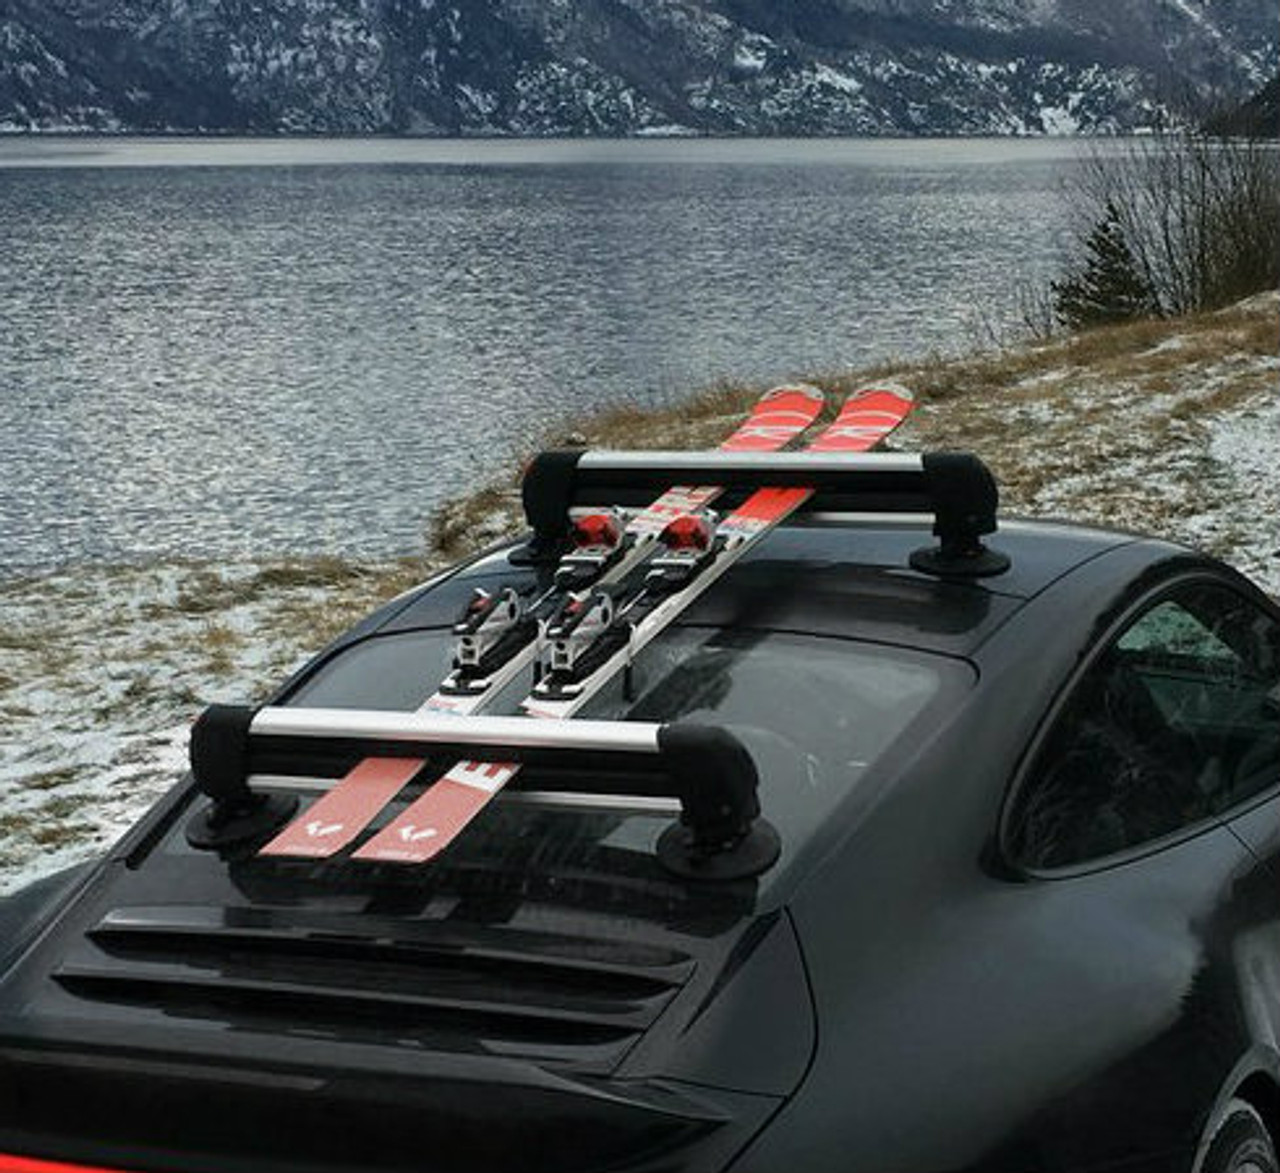 Universal Suction Mount Ski Roof Rack Seasucker